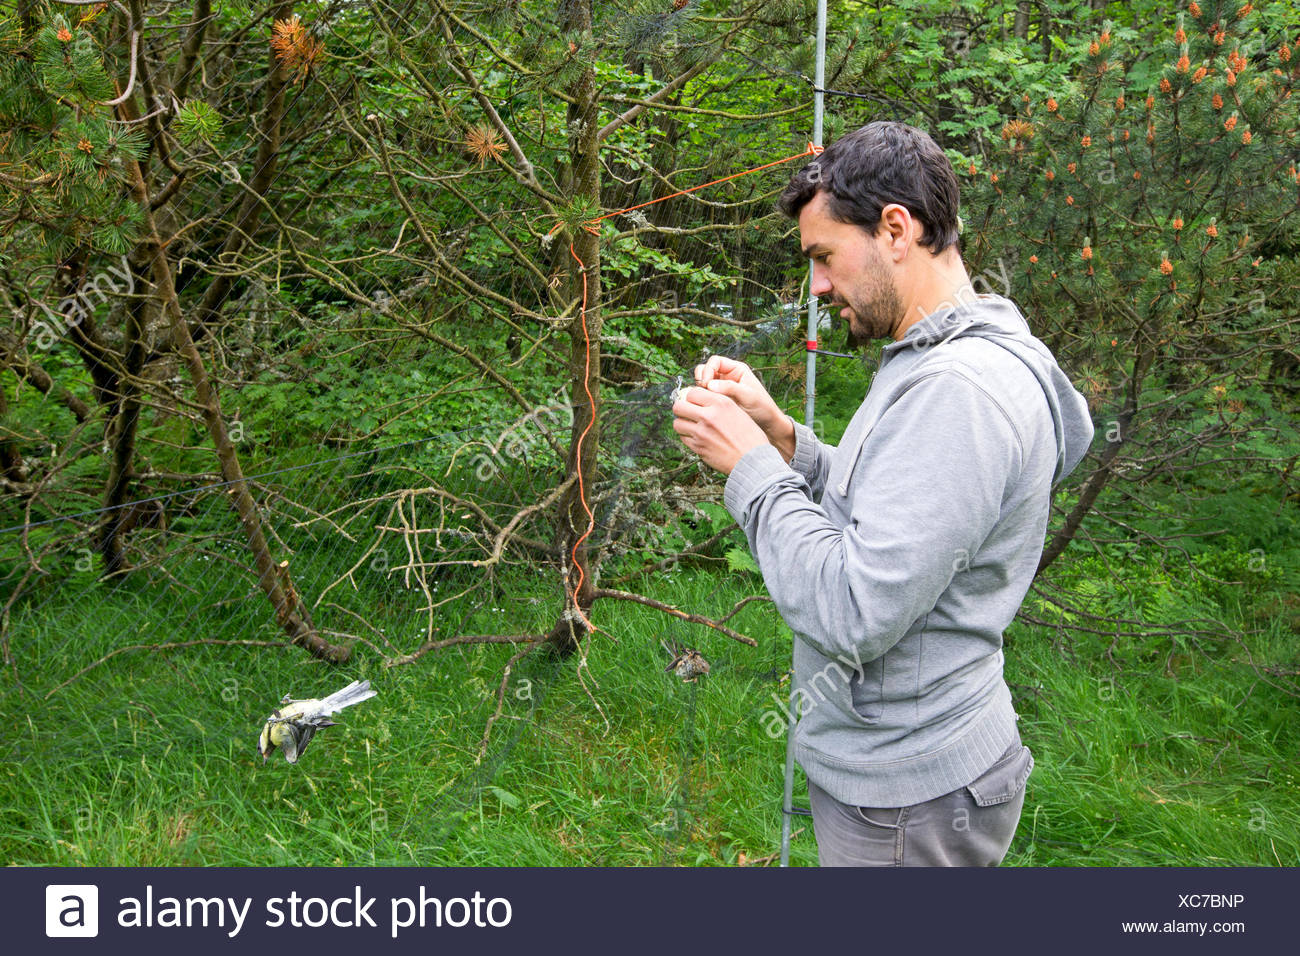 Passerine banding captured by net - Alsace France Bird Banding with nylon nets for STOC Program: Temporal Monitoring of Common Birds - Stock Image